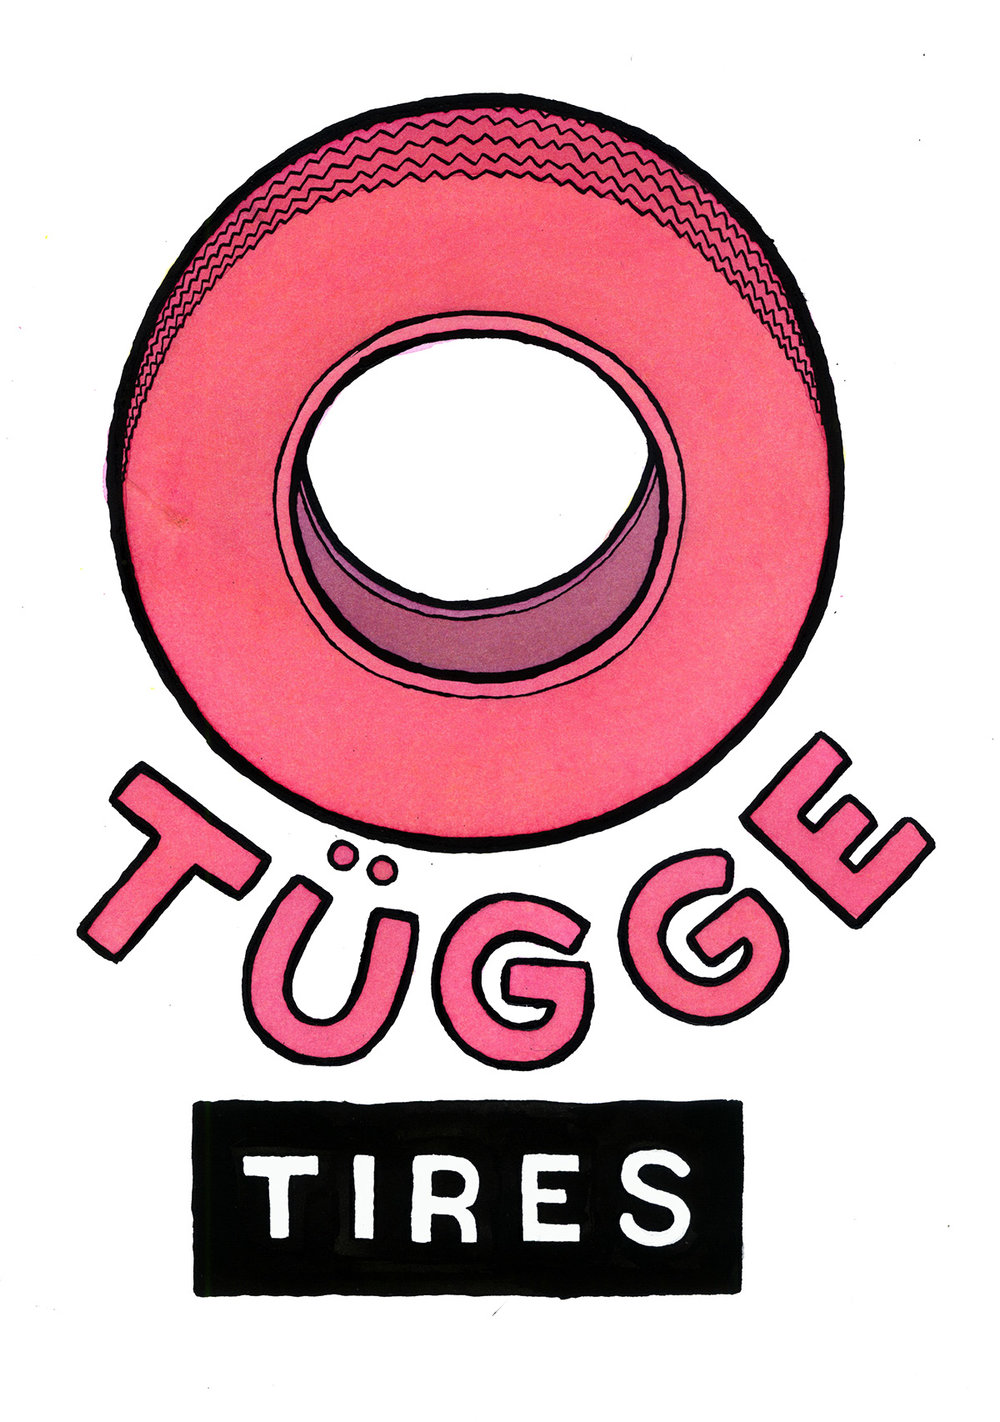 TuggeTires-web.jpg